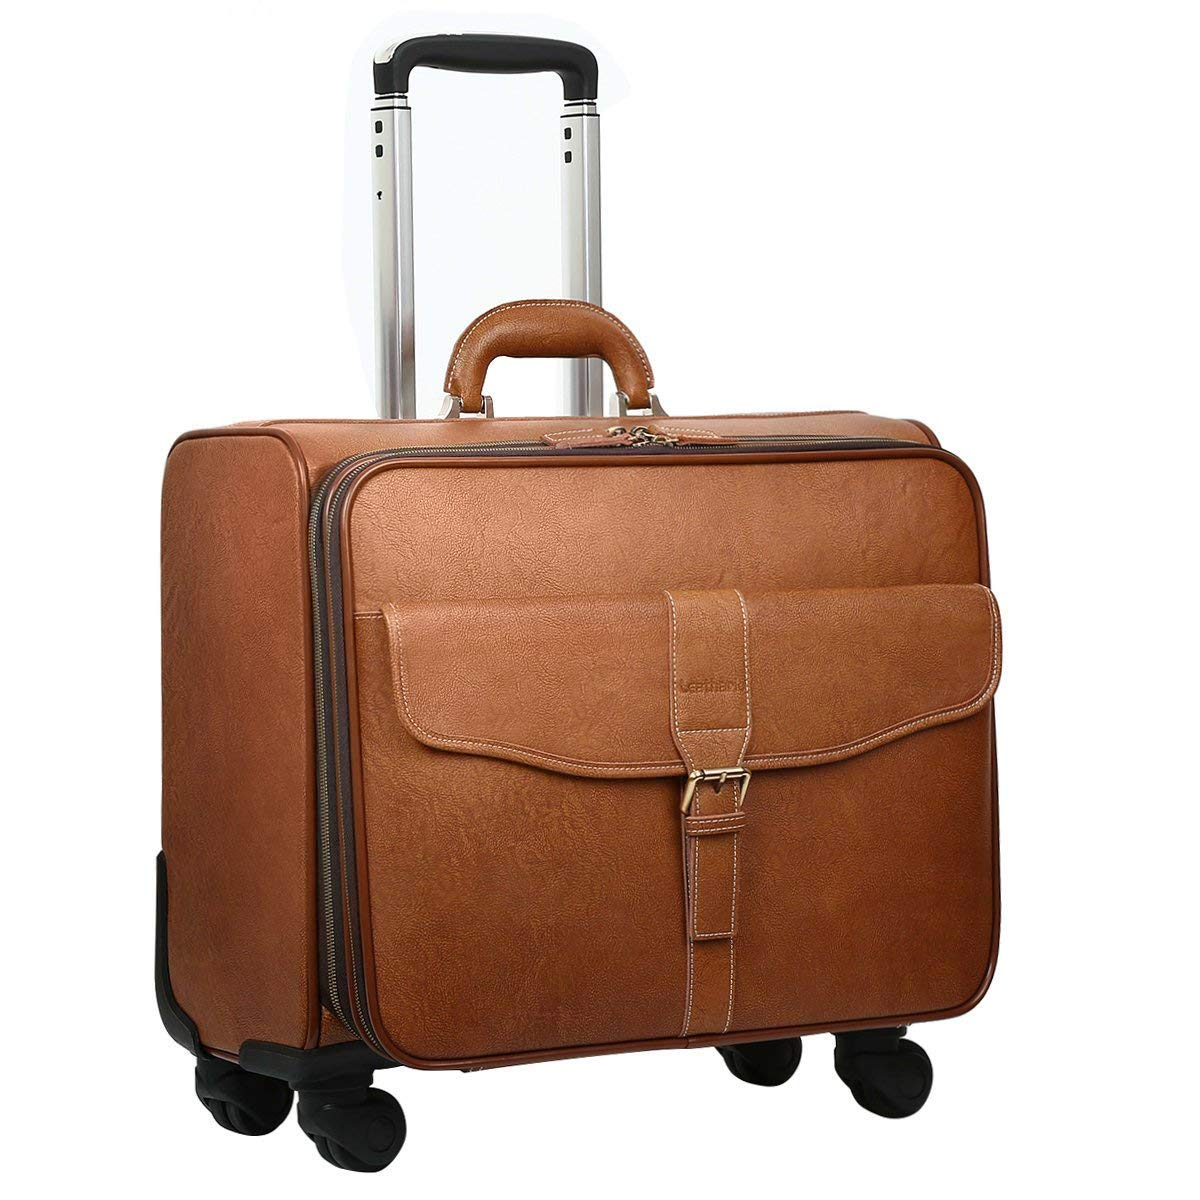 c68784138b2c Amazon.com | Leathario Leather Rolling Laptop Case Wheeled Briefcase  Suitcase Roller Boarding | Travel Duffels